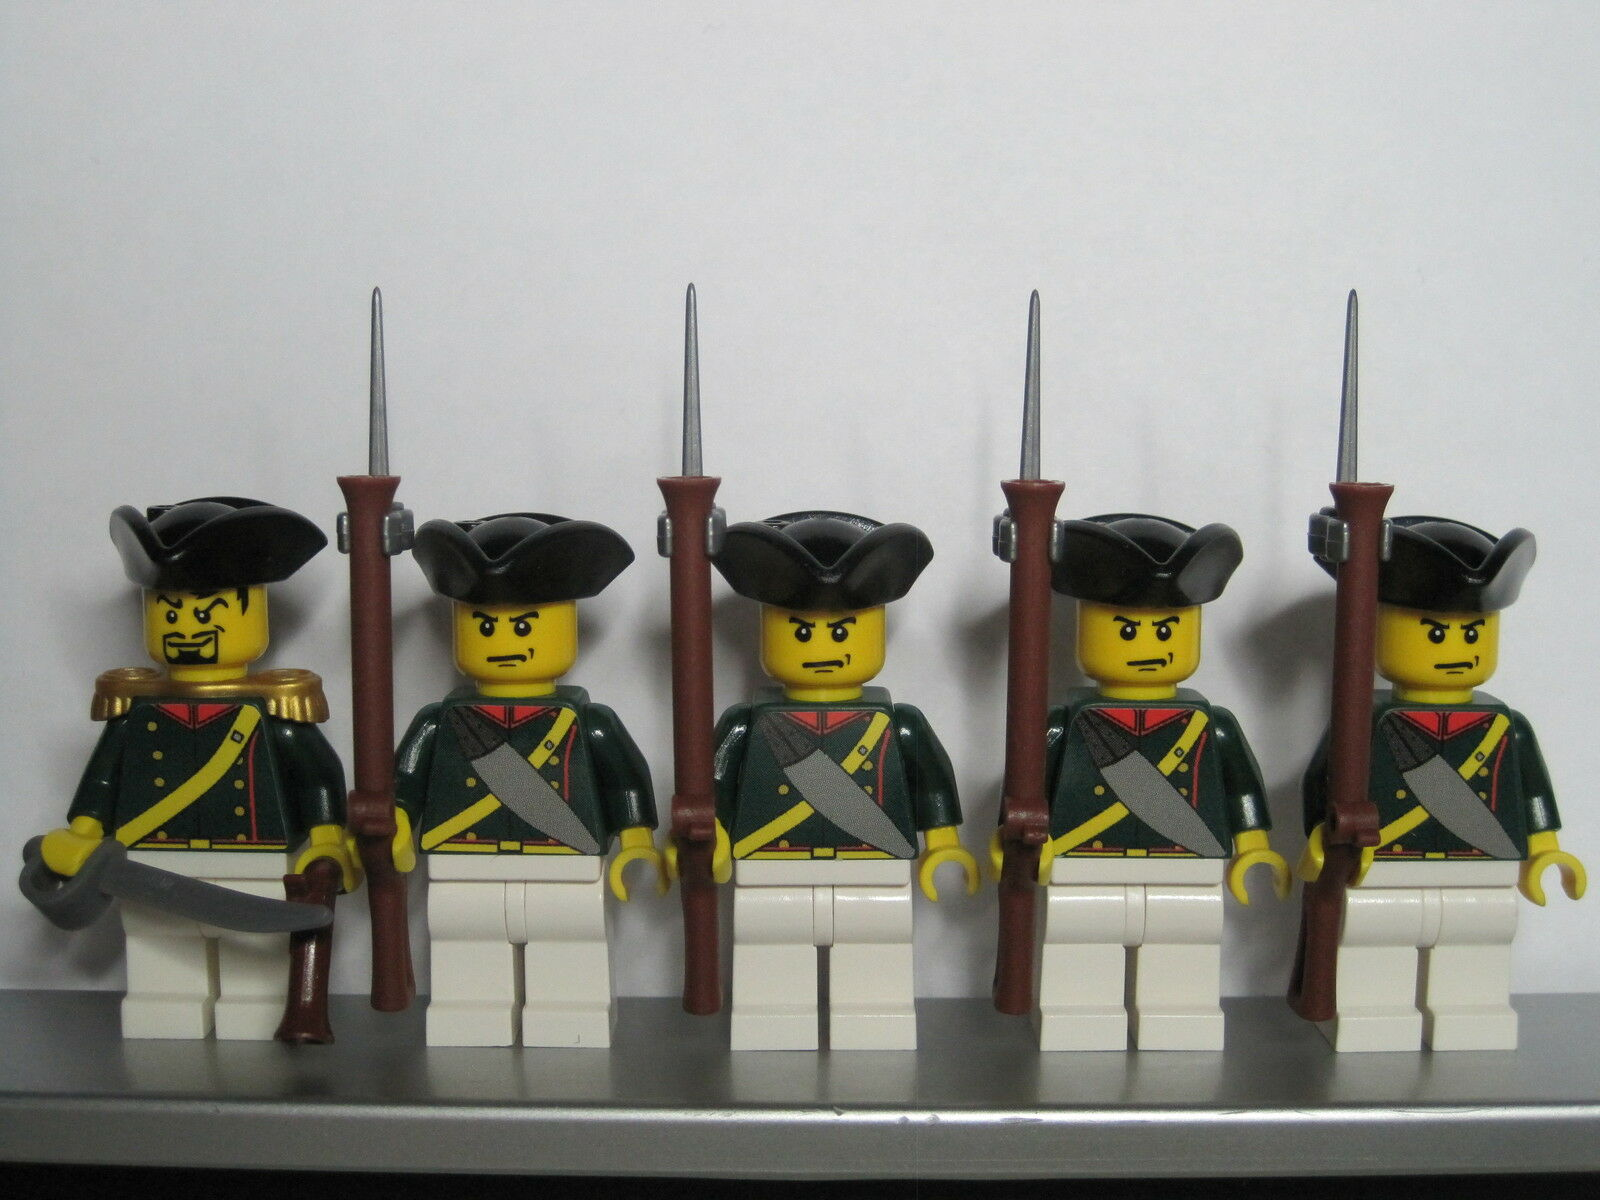 Lego PIRATES NAPOLEONIC WARS FRENCH Elite Infantry Infantry Infantry Soldiers MINIFIGS ef1721